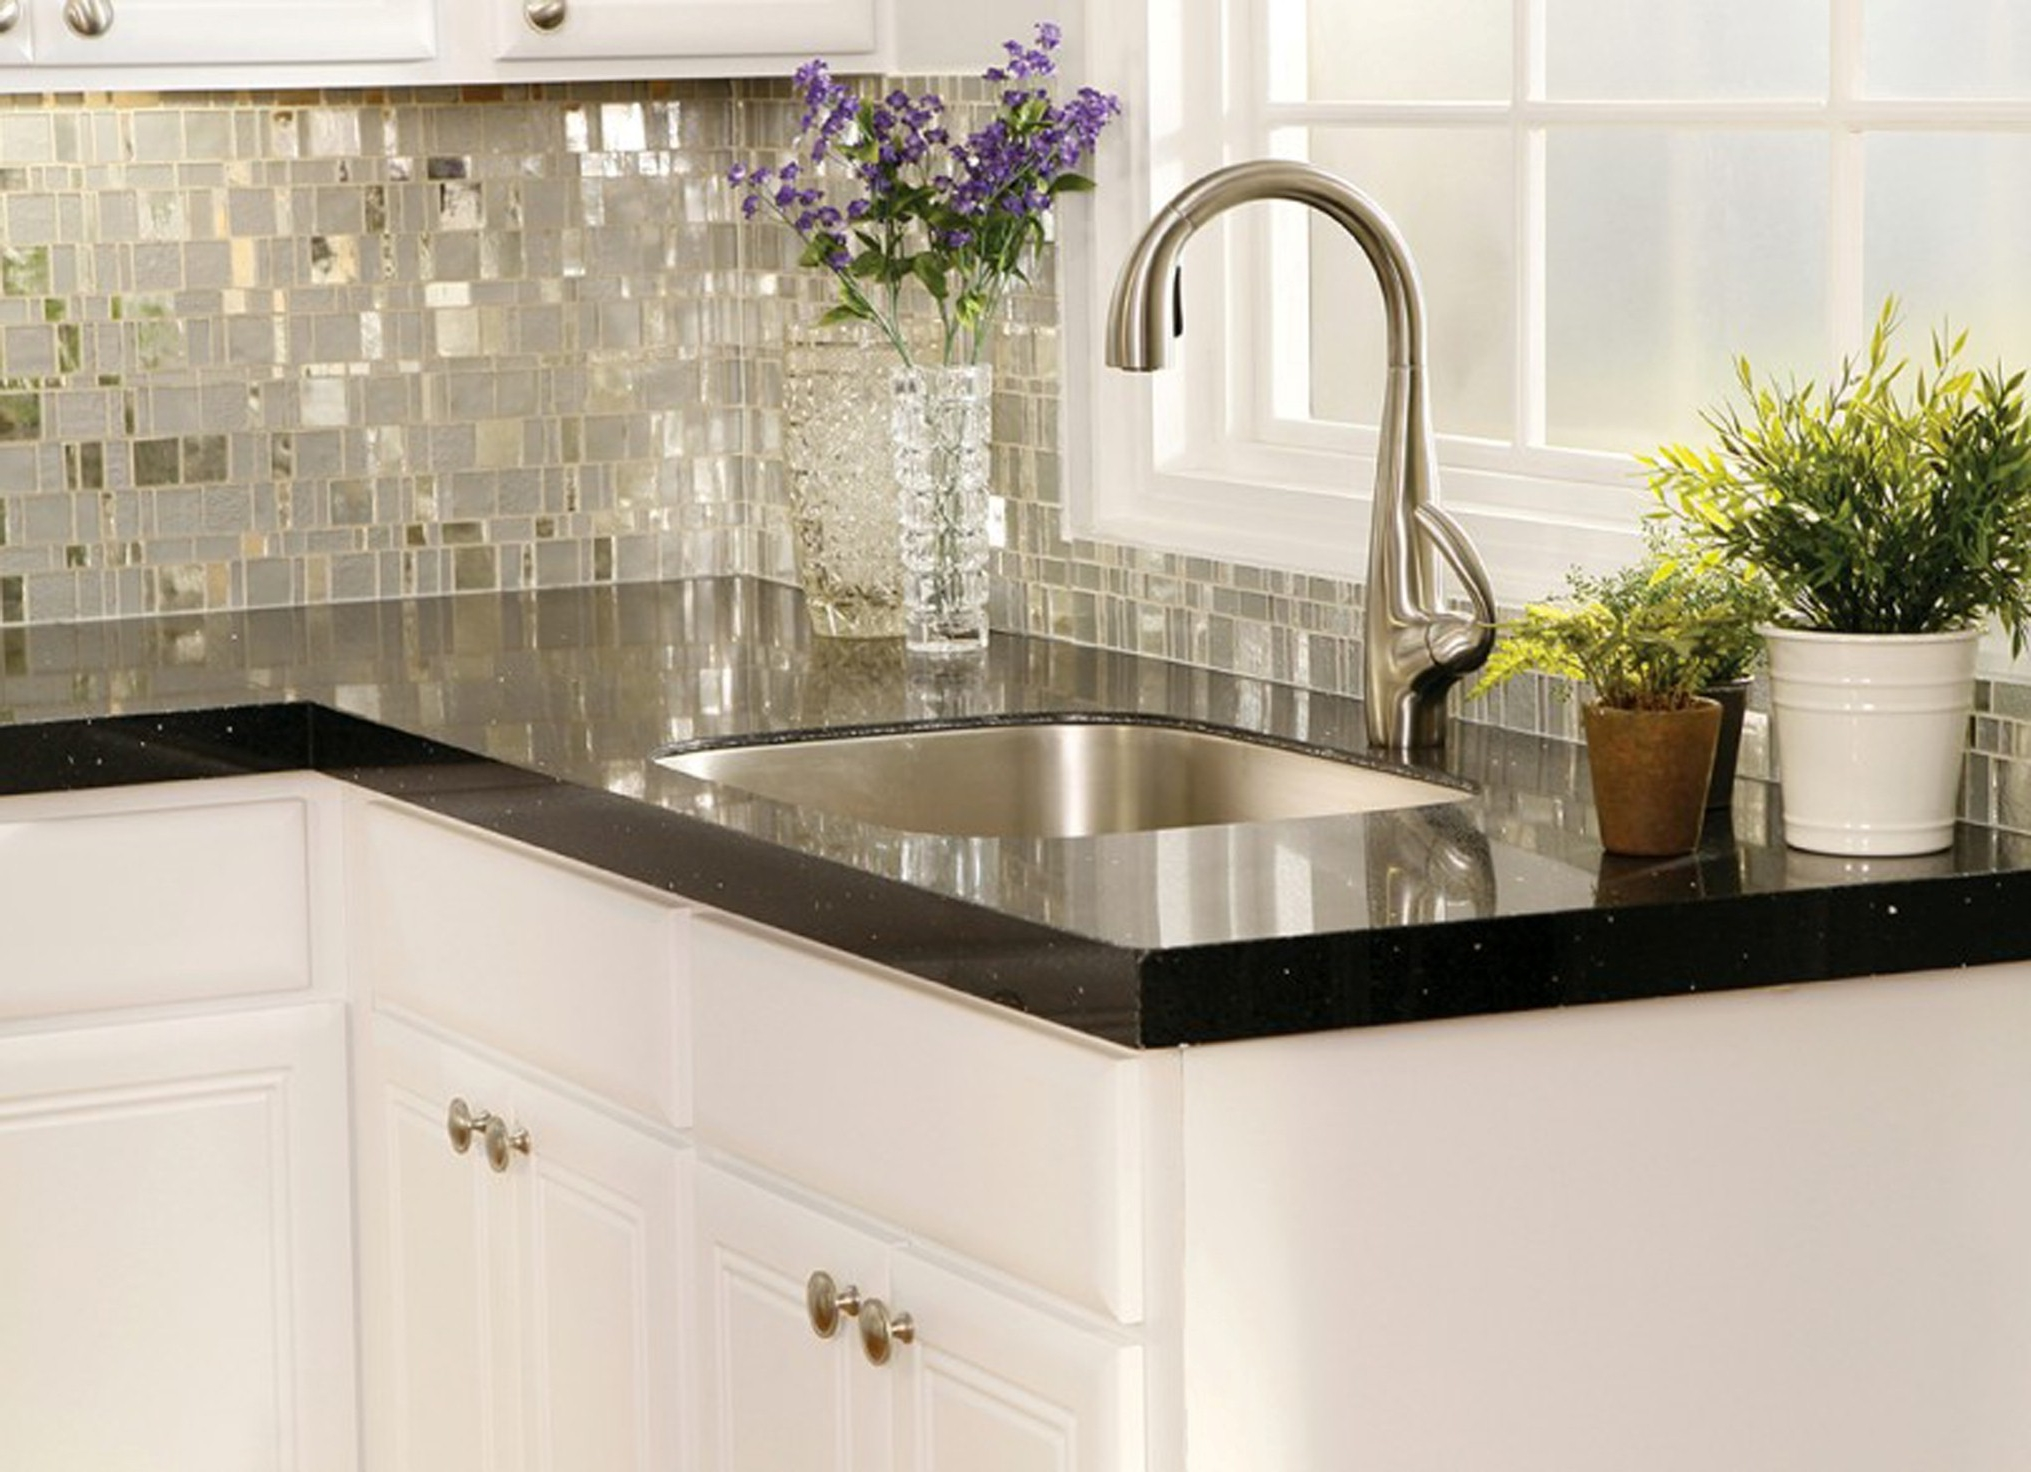 Contemporary Kitchen Countertops Material With Dark Marble Over The White Natty Cabinet Also With Huge Faucet Island Sink Awesome Counterops For Kitchens Options (View 20 of 39)